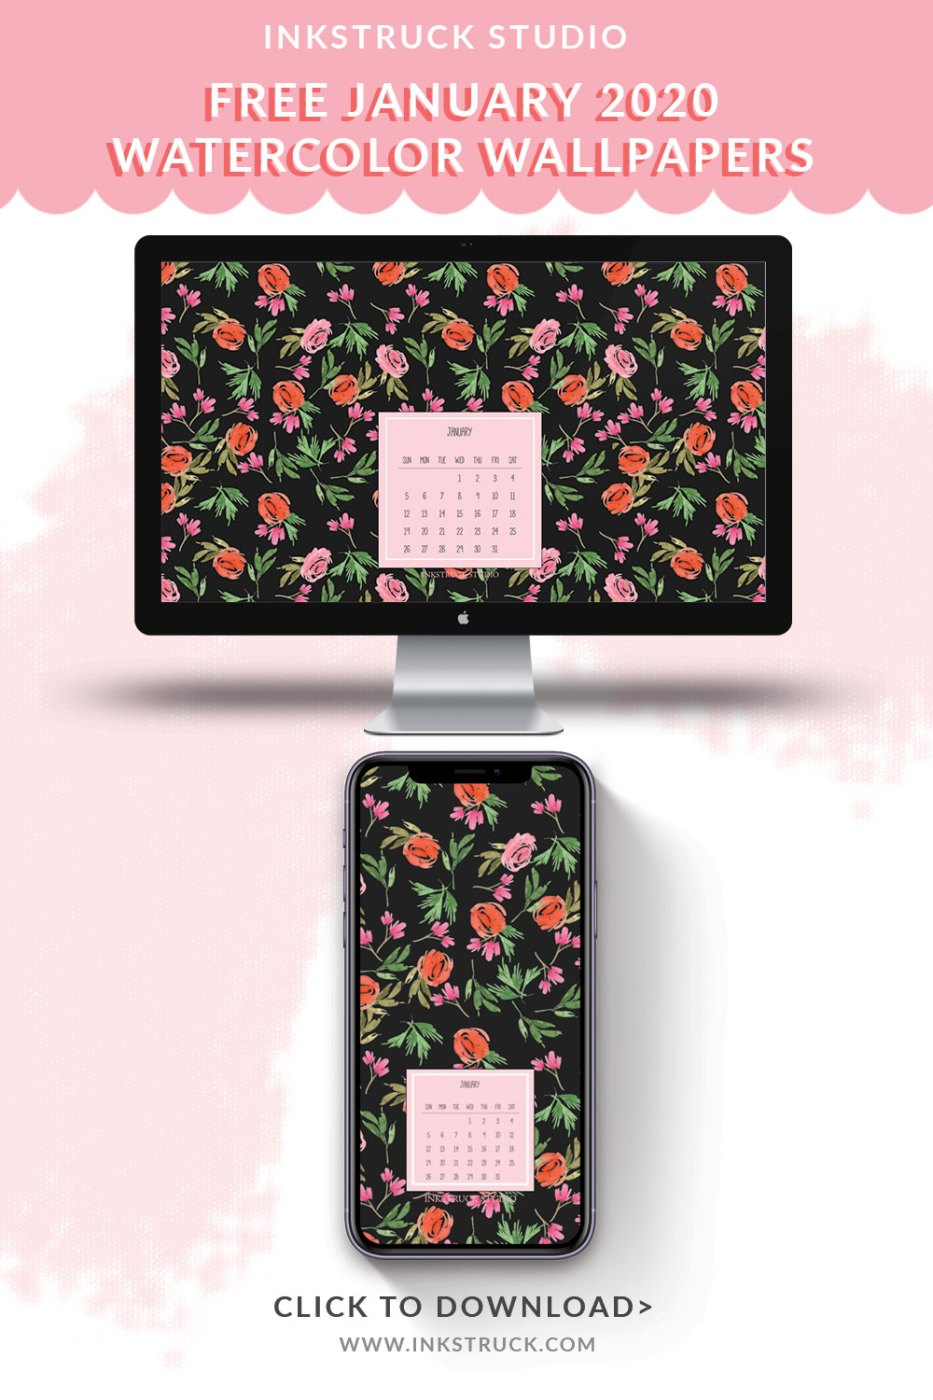 Download free January watercolor wallpapers for January 2020 in the blog. Available in both desktop and mobile versions in dated and undated styles.-Inkstruck Studio